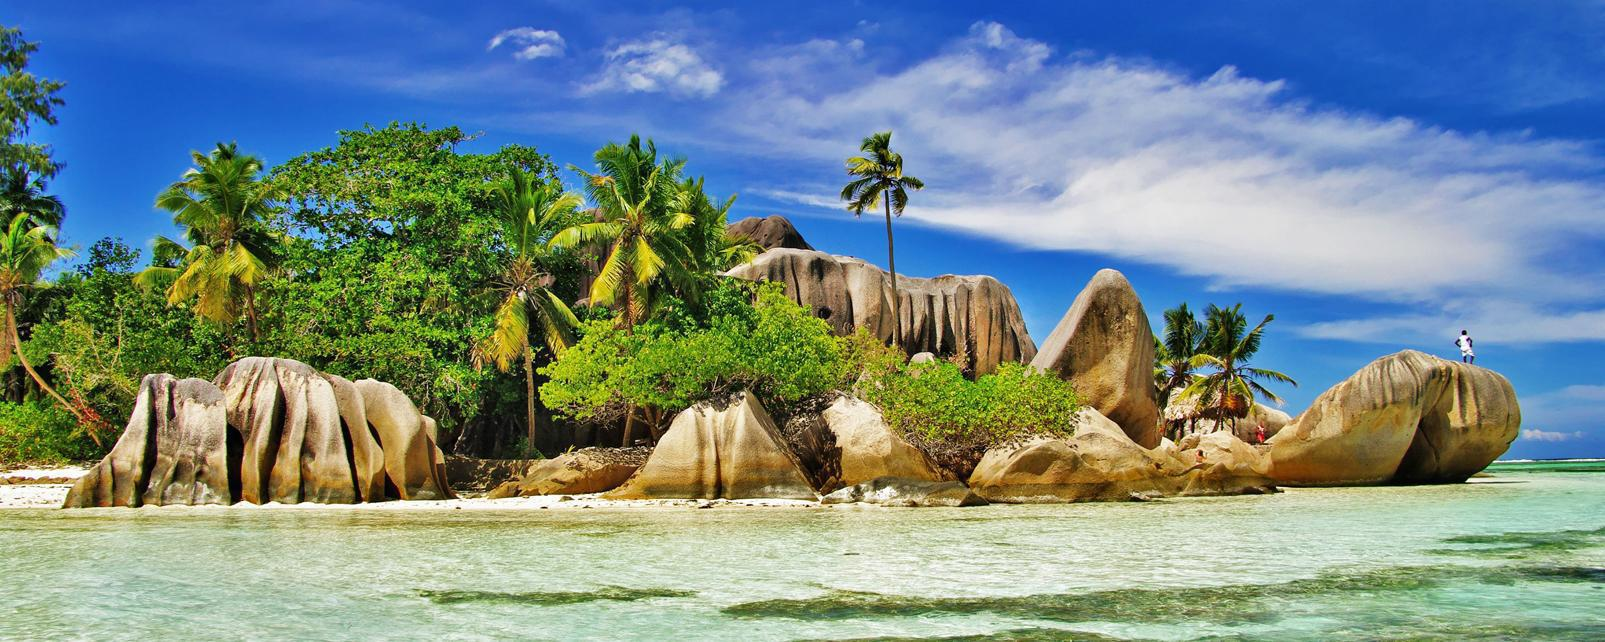 Travel to the Seychelles